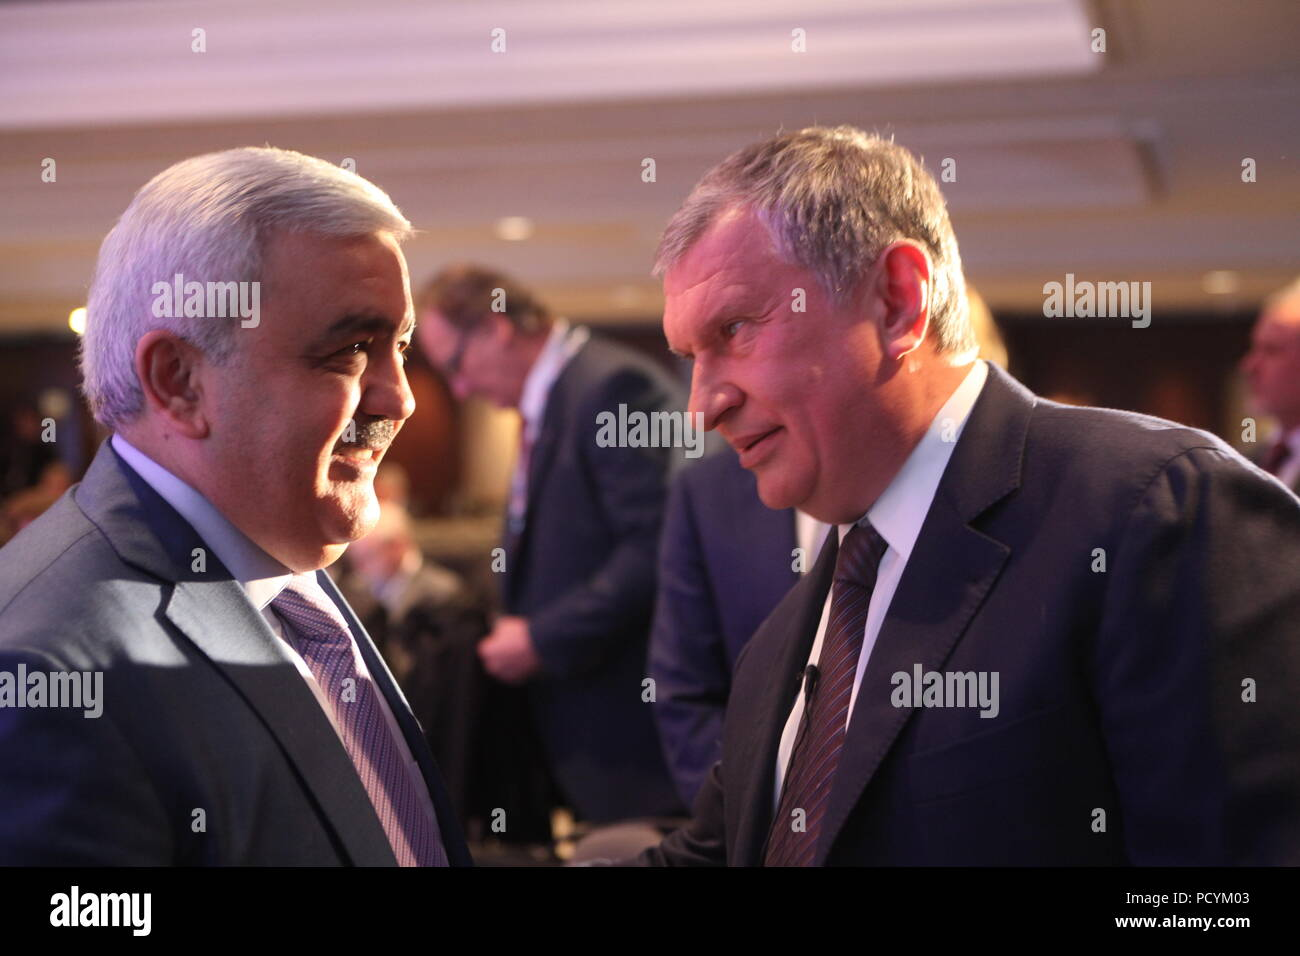 Azeri SOCAR CEO Rovnag Abdullayev (L) talks to Russia's oil and gas giant Rosneft boss Igor Sechin during coffee-break in IP week conference in London - Stock Image